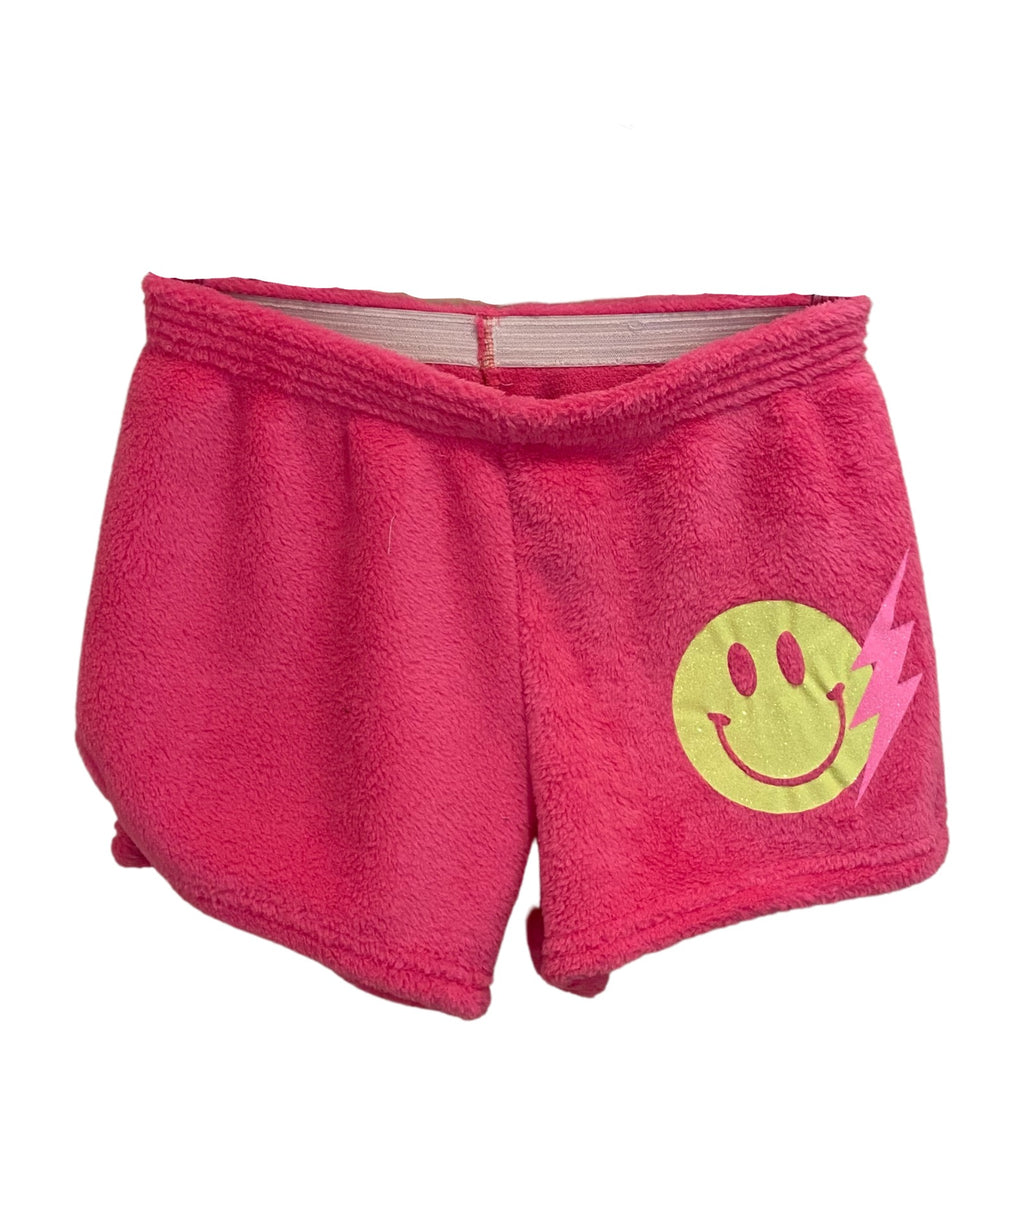 Made with Love and Kisses Girls Neon Pink Smiley Bolt Shorts